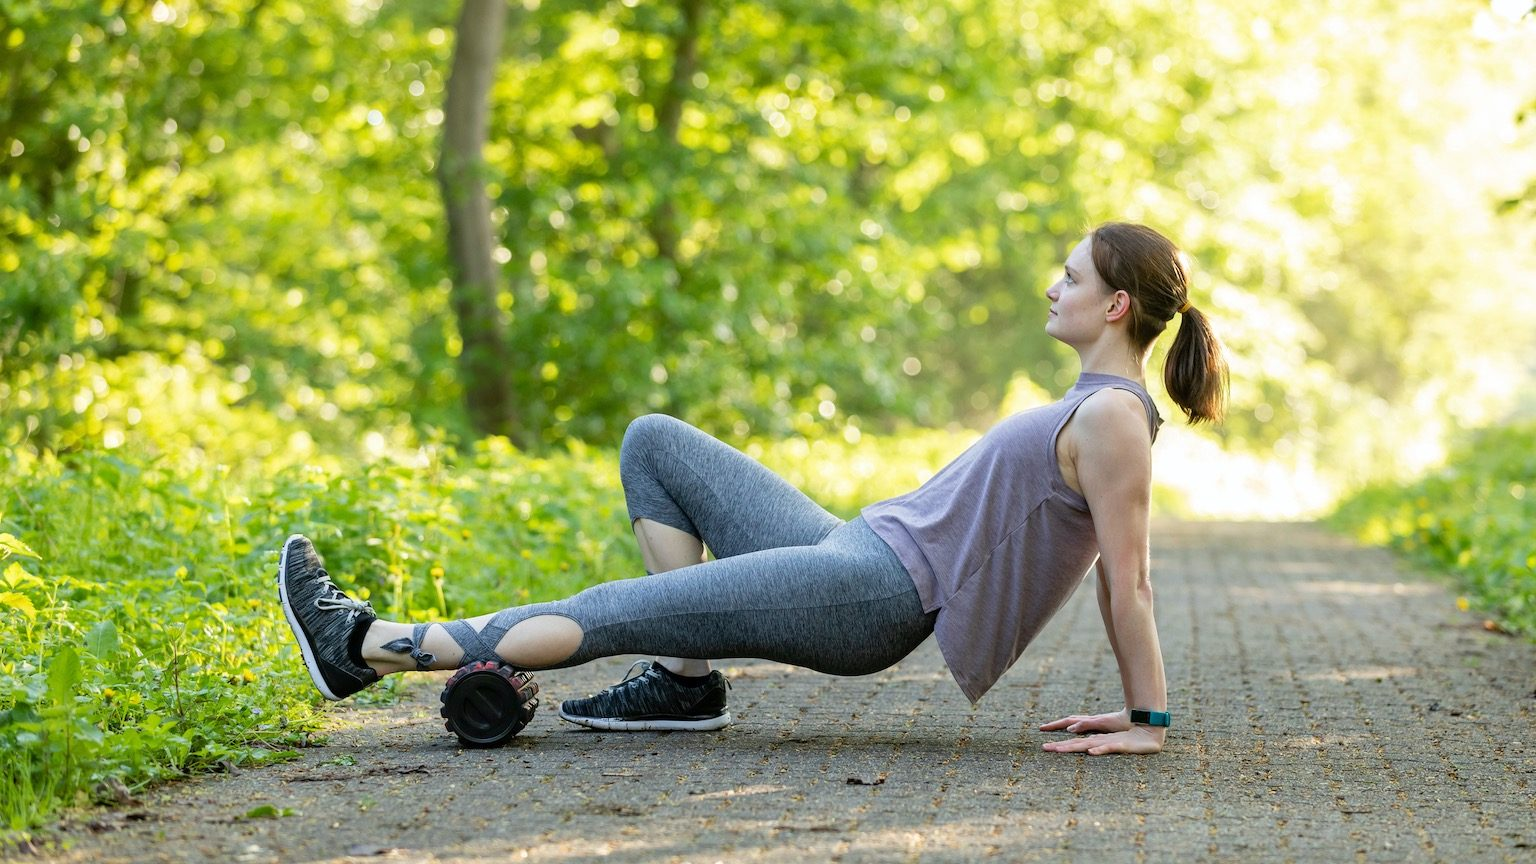 Young woman is doing fitness with a blackroll in nature